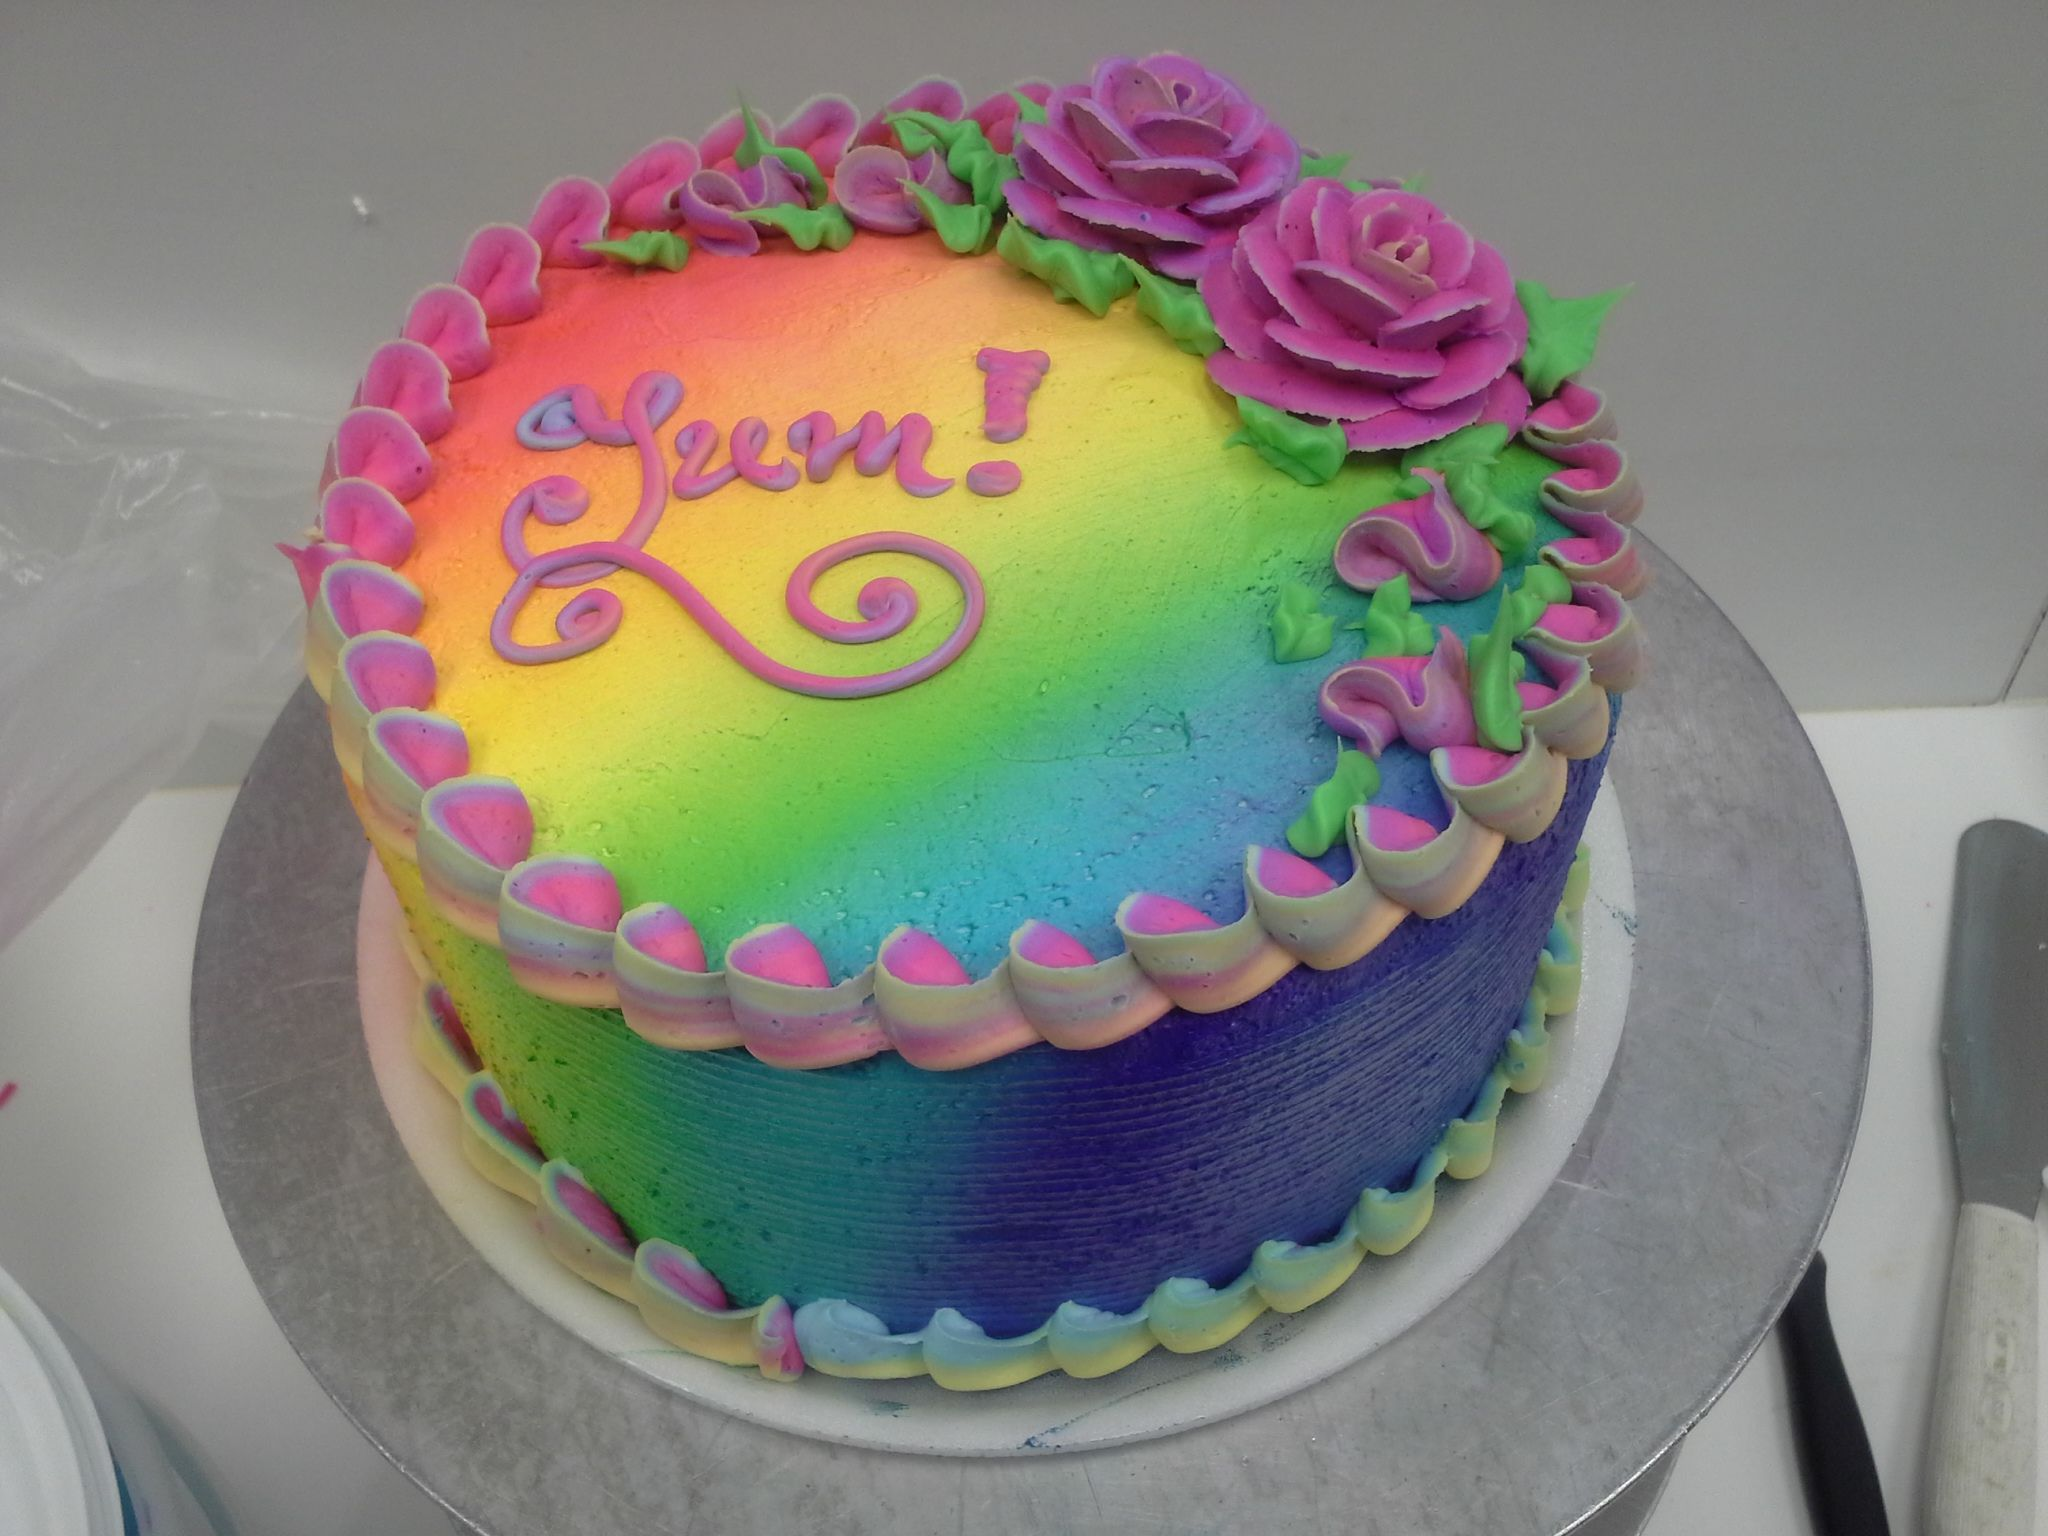 A simple twotier cake made interesting with a rainbow airbrush